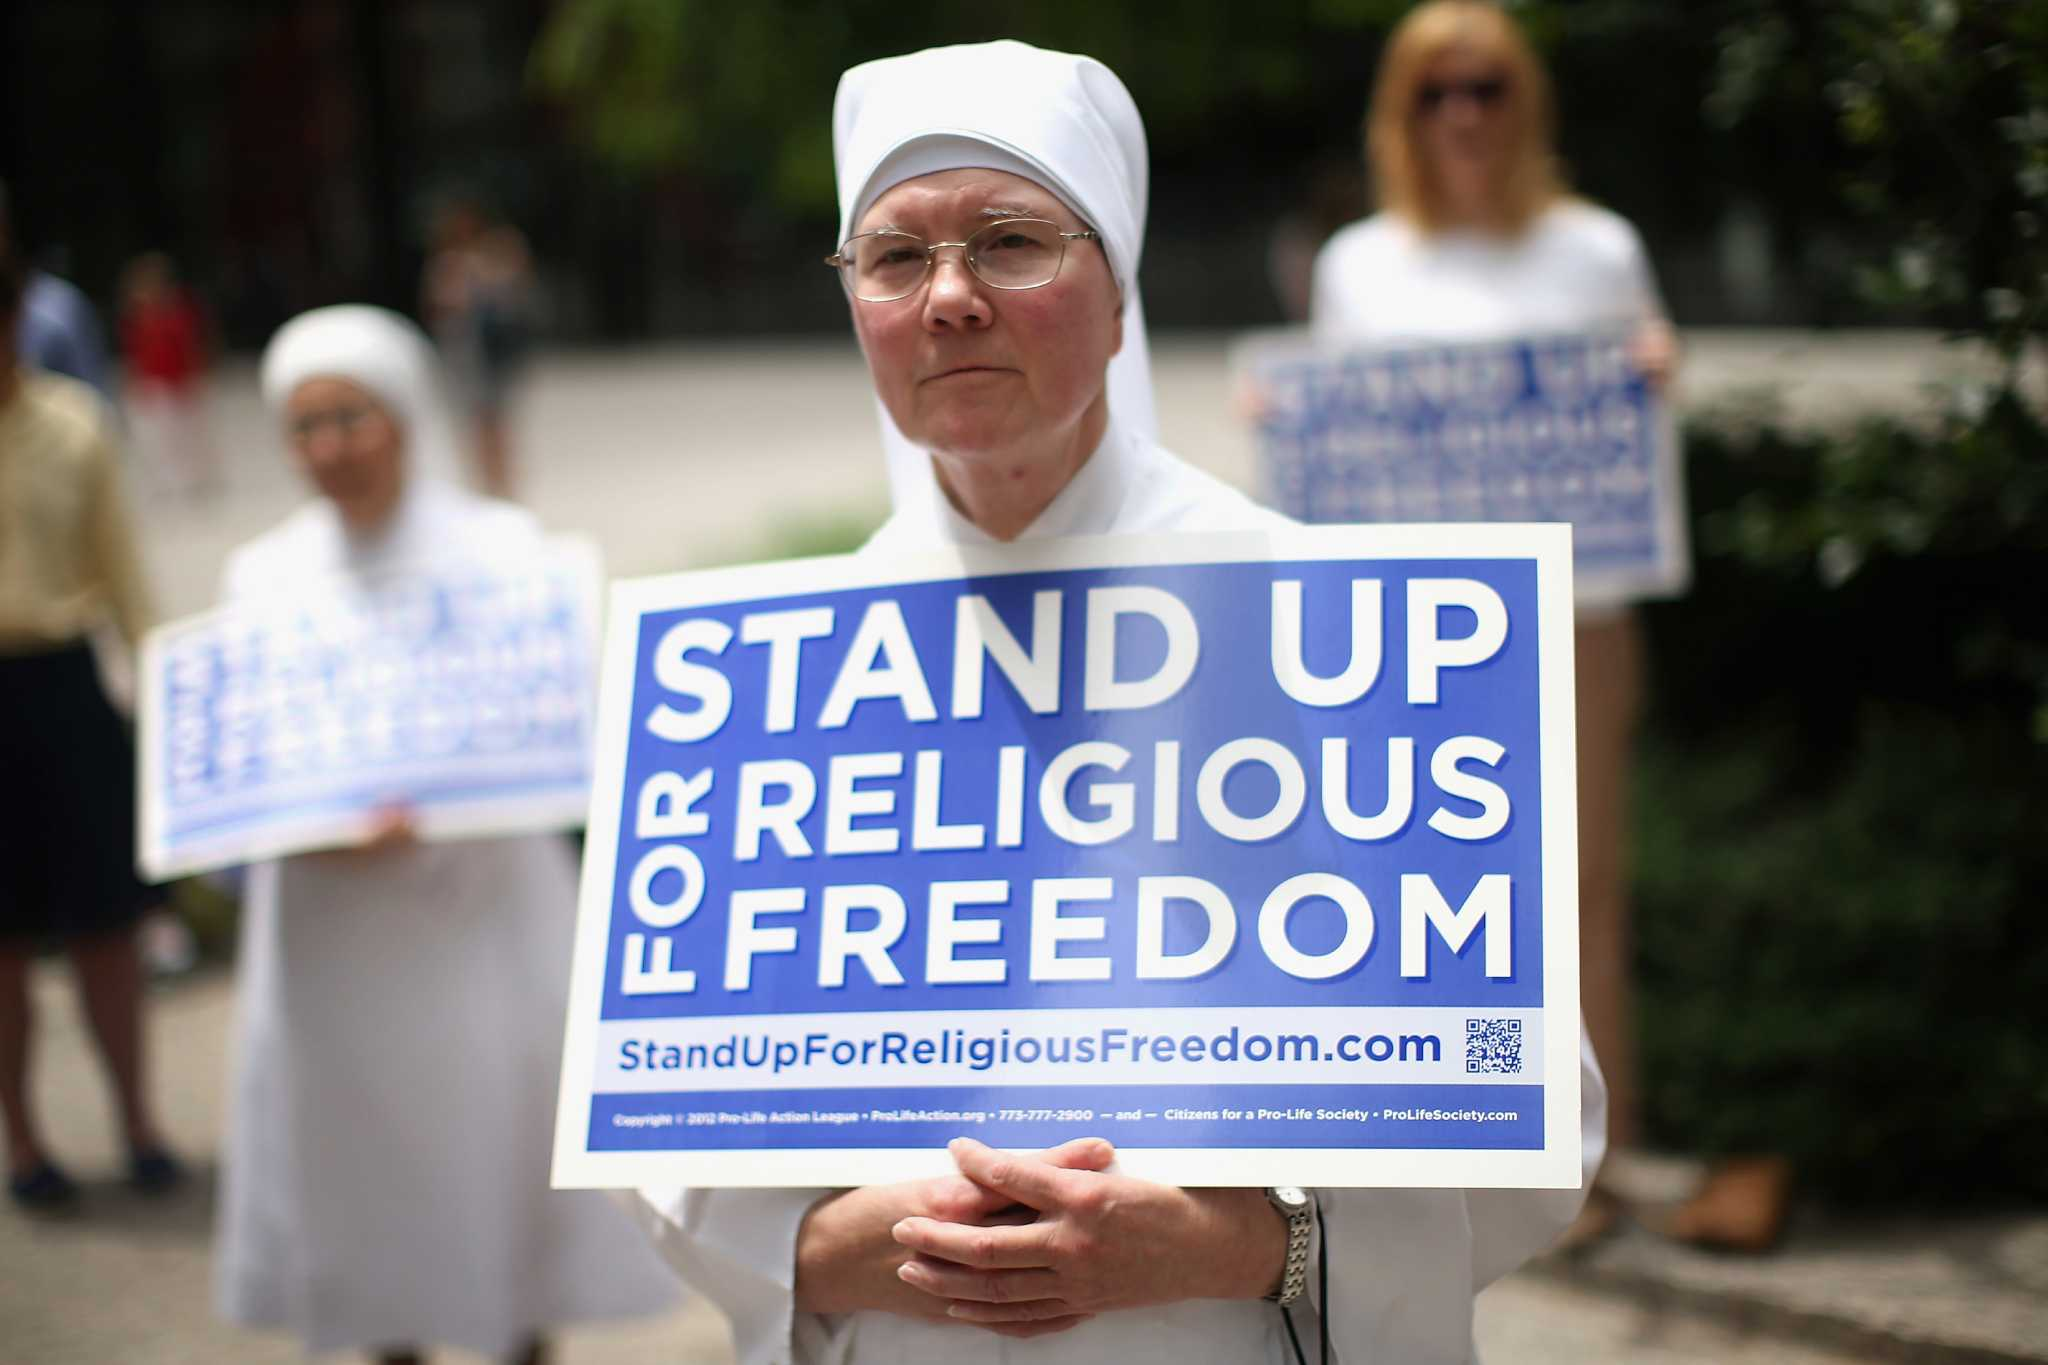 obamacare vs religion (by timothy m dolan, the wall street journal, wsjcom) – religious freedom is the lifeblood of the american people, the cornerstone of american government.